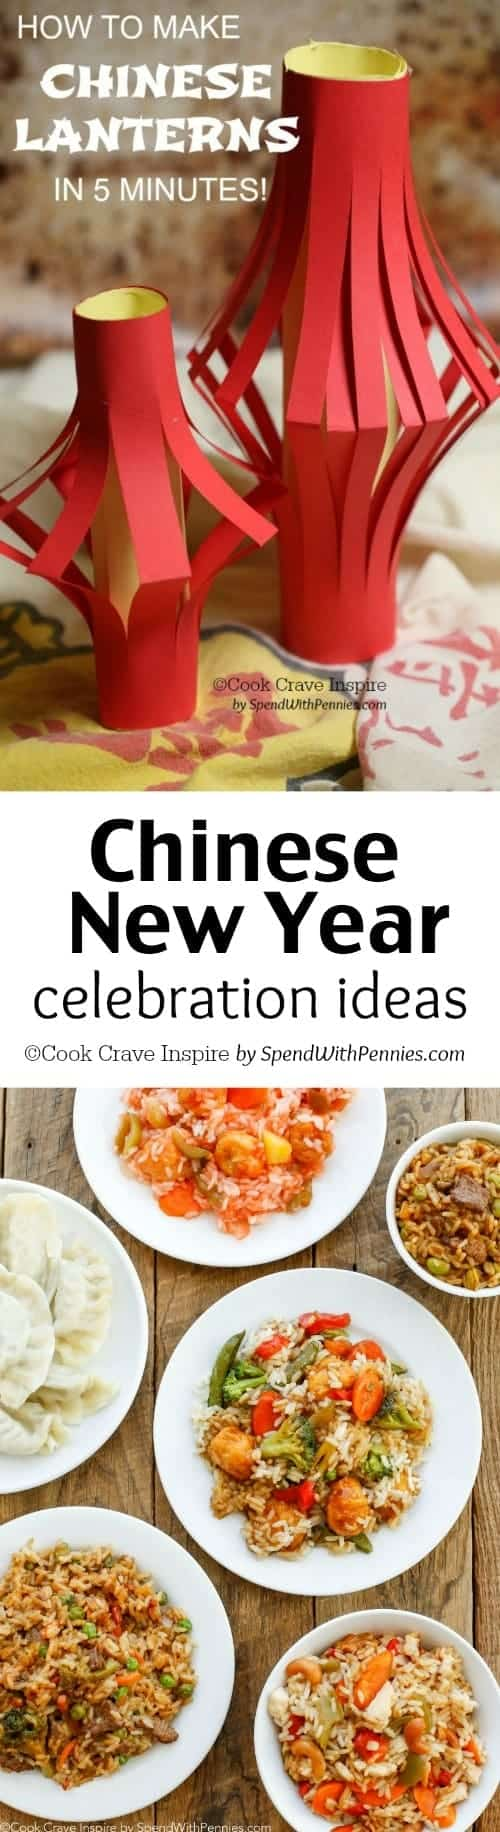 Chinese new year celebration ideas spend with pennies find easy ideas to celebrate chinese new year with your friends and family including quick forumfinder Choice Image